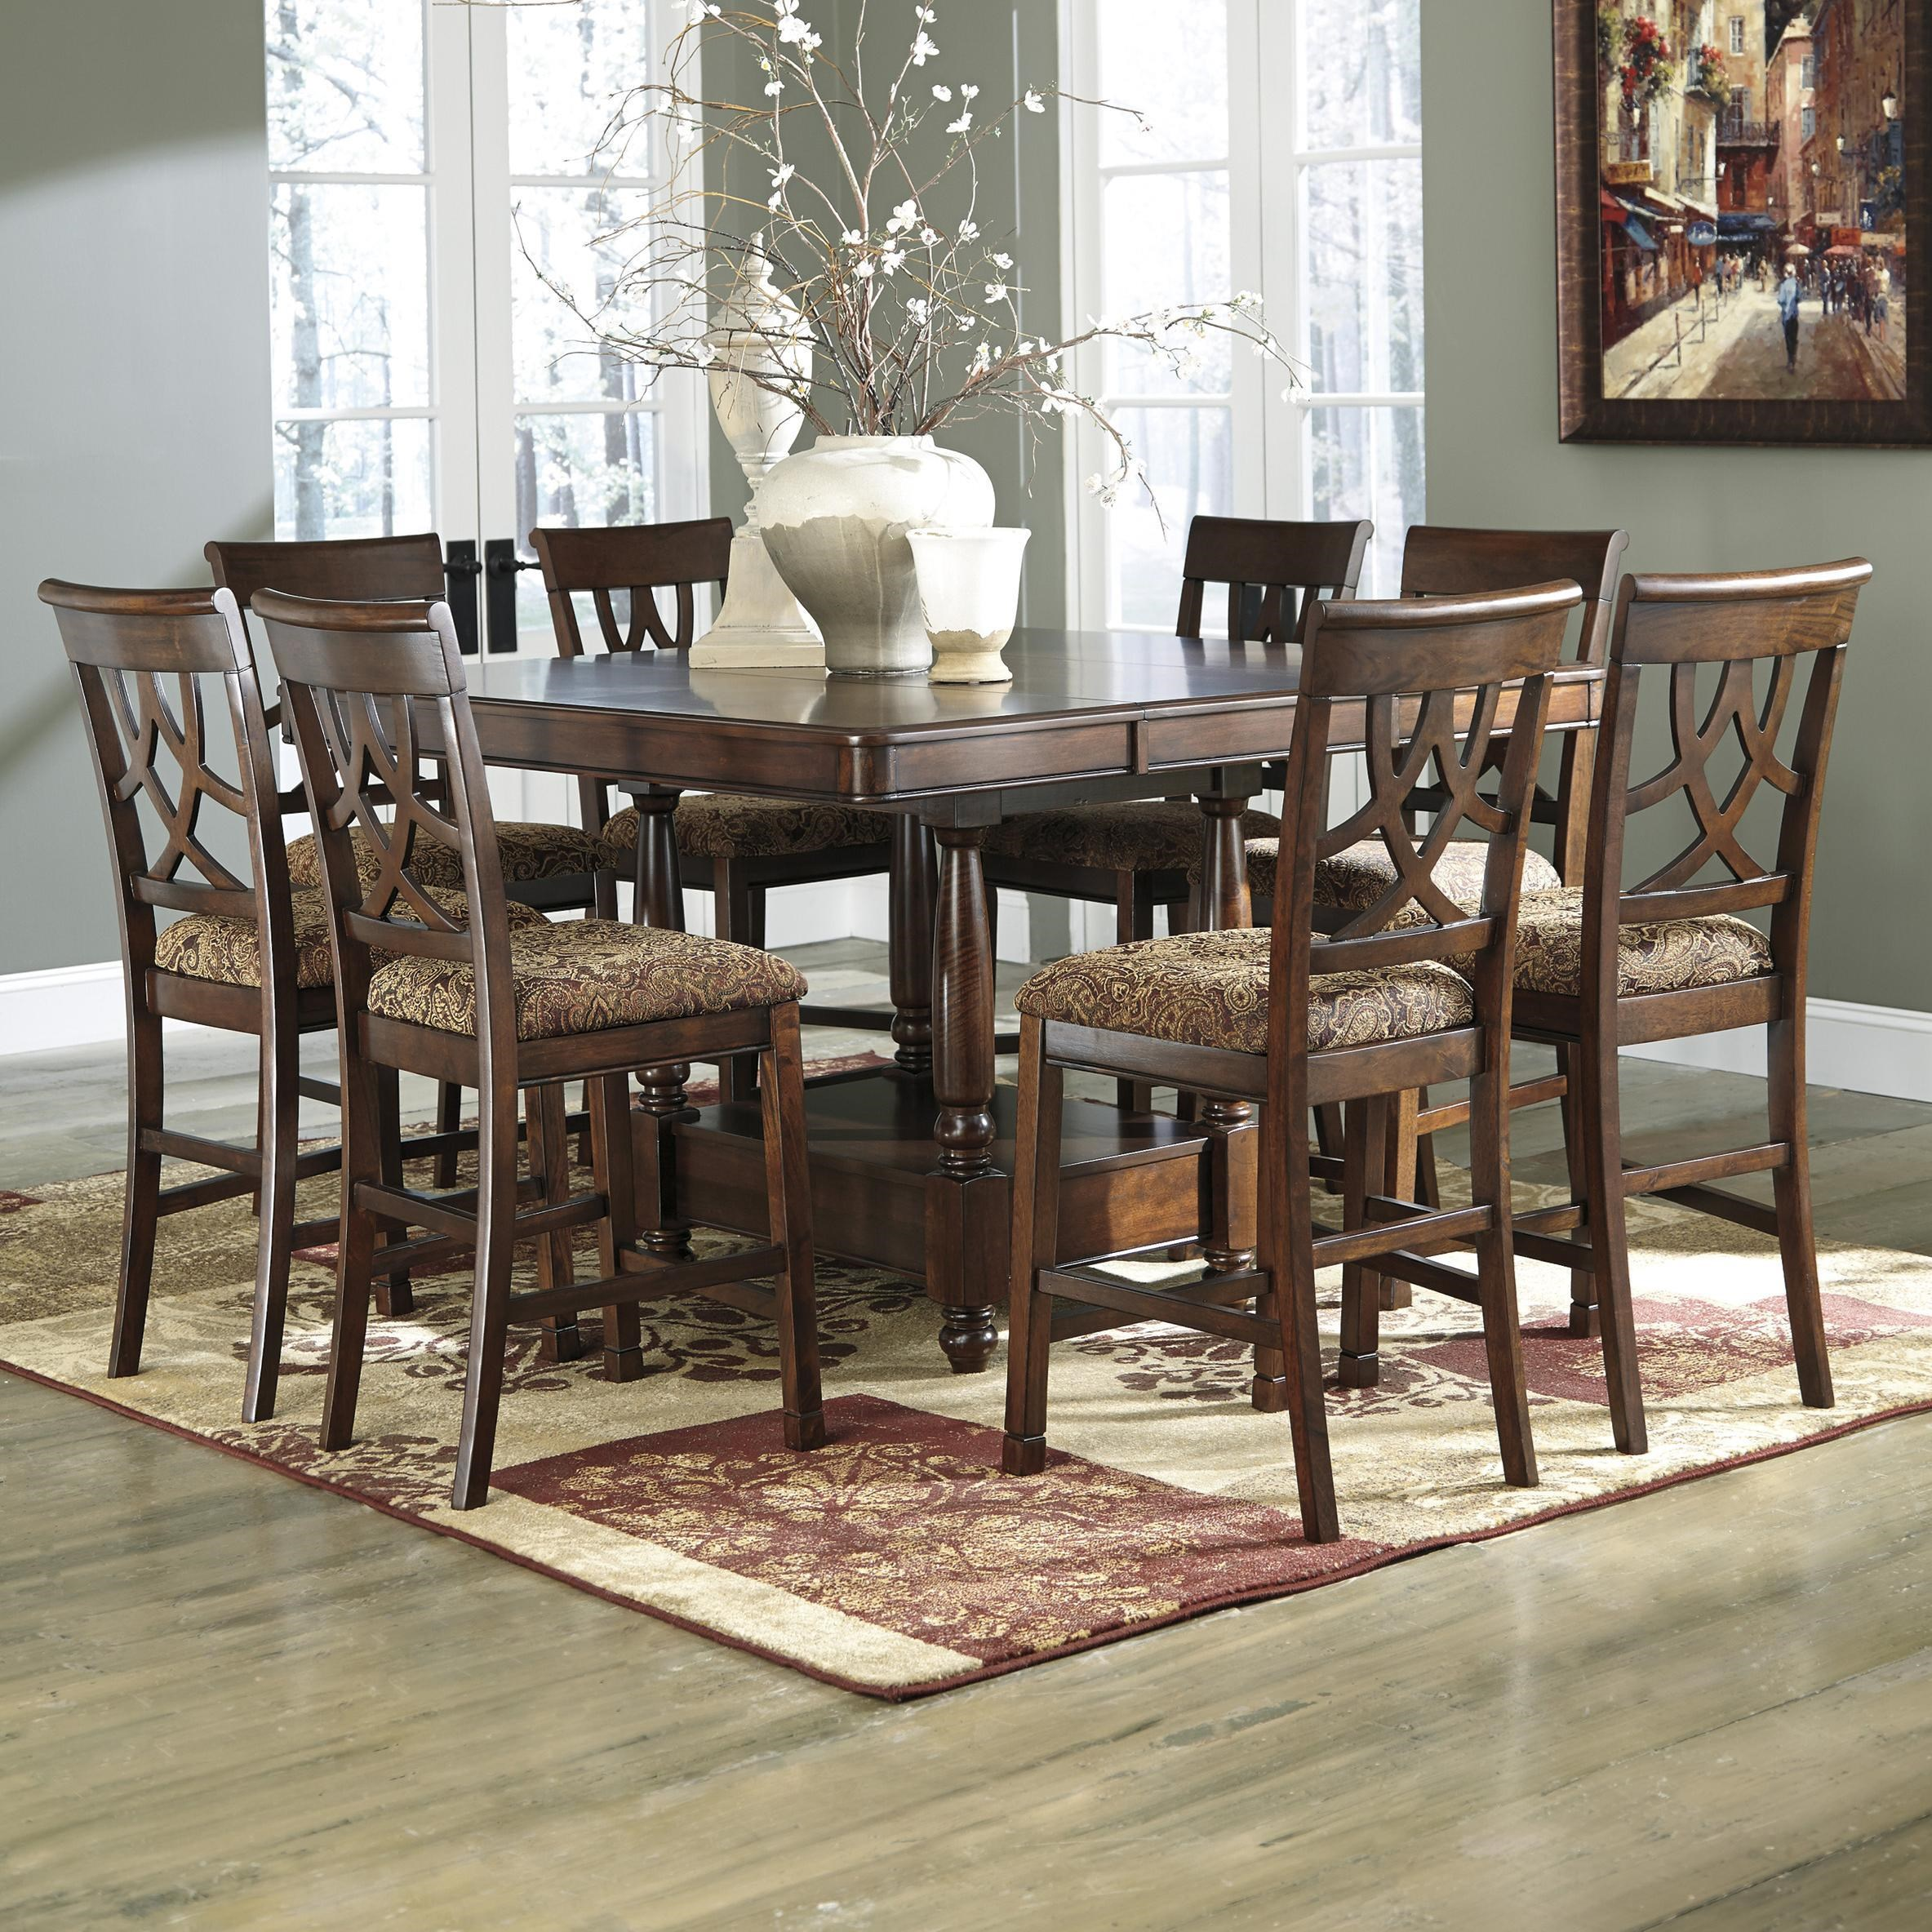 Ashley Furniture Dinette Set: Signature Design By Ashley Leahlyn D436-32+6x124 7 Piece